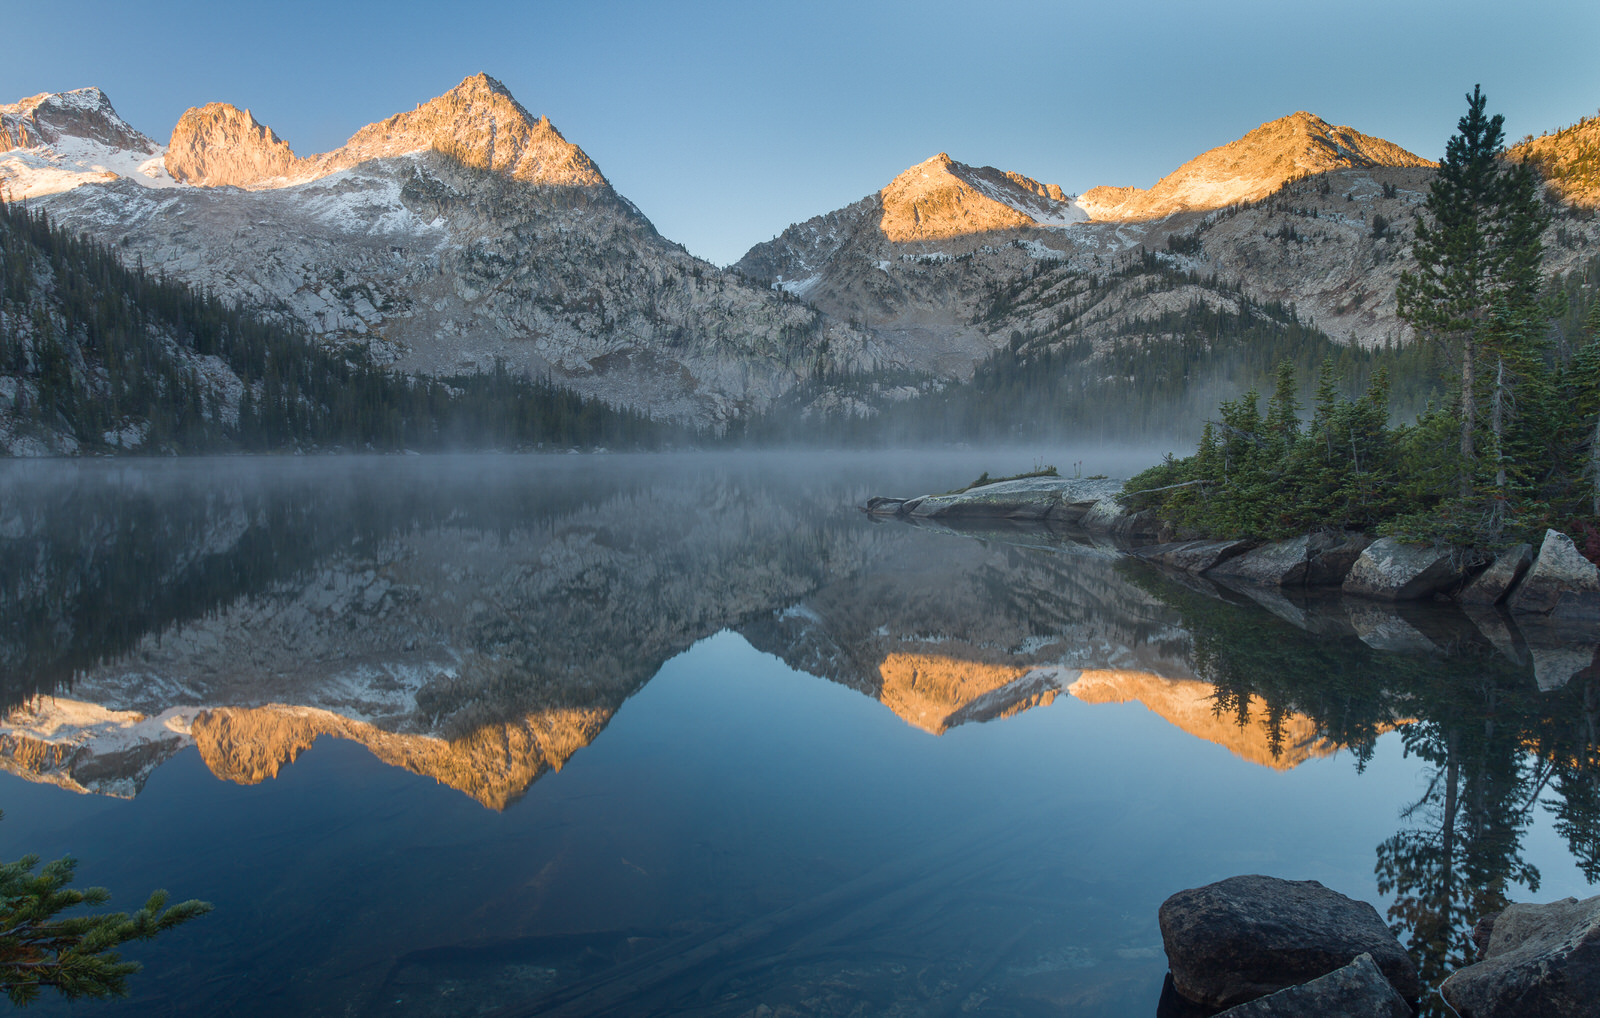 Sunrise at Toxaway Lake in the Sawtooths